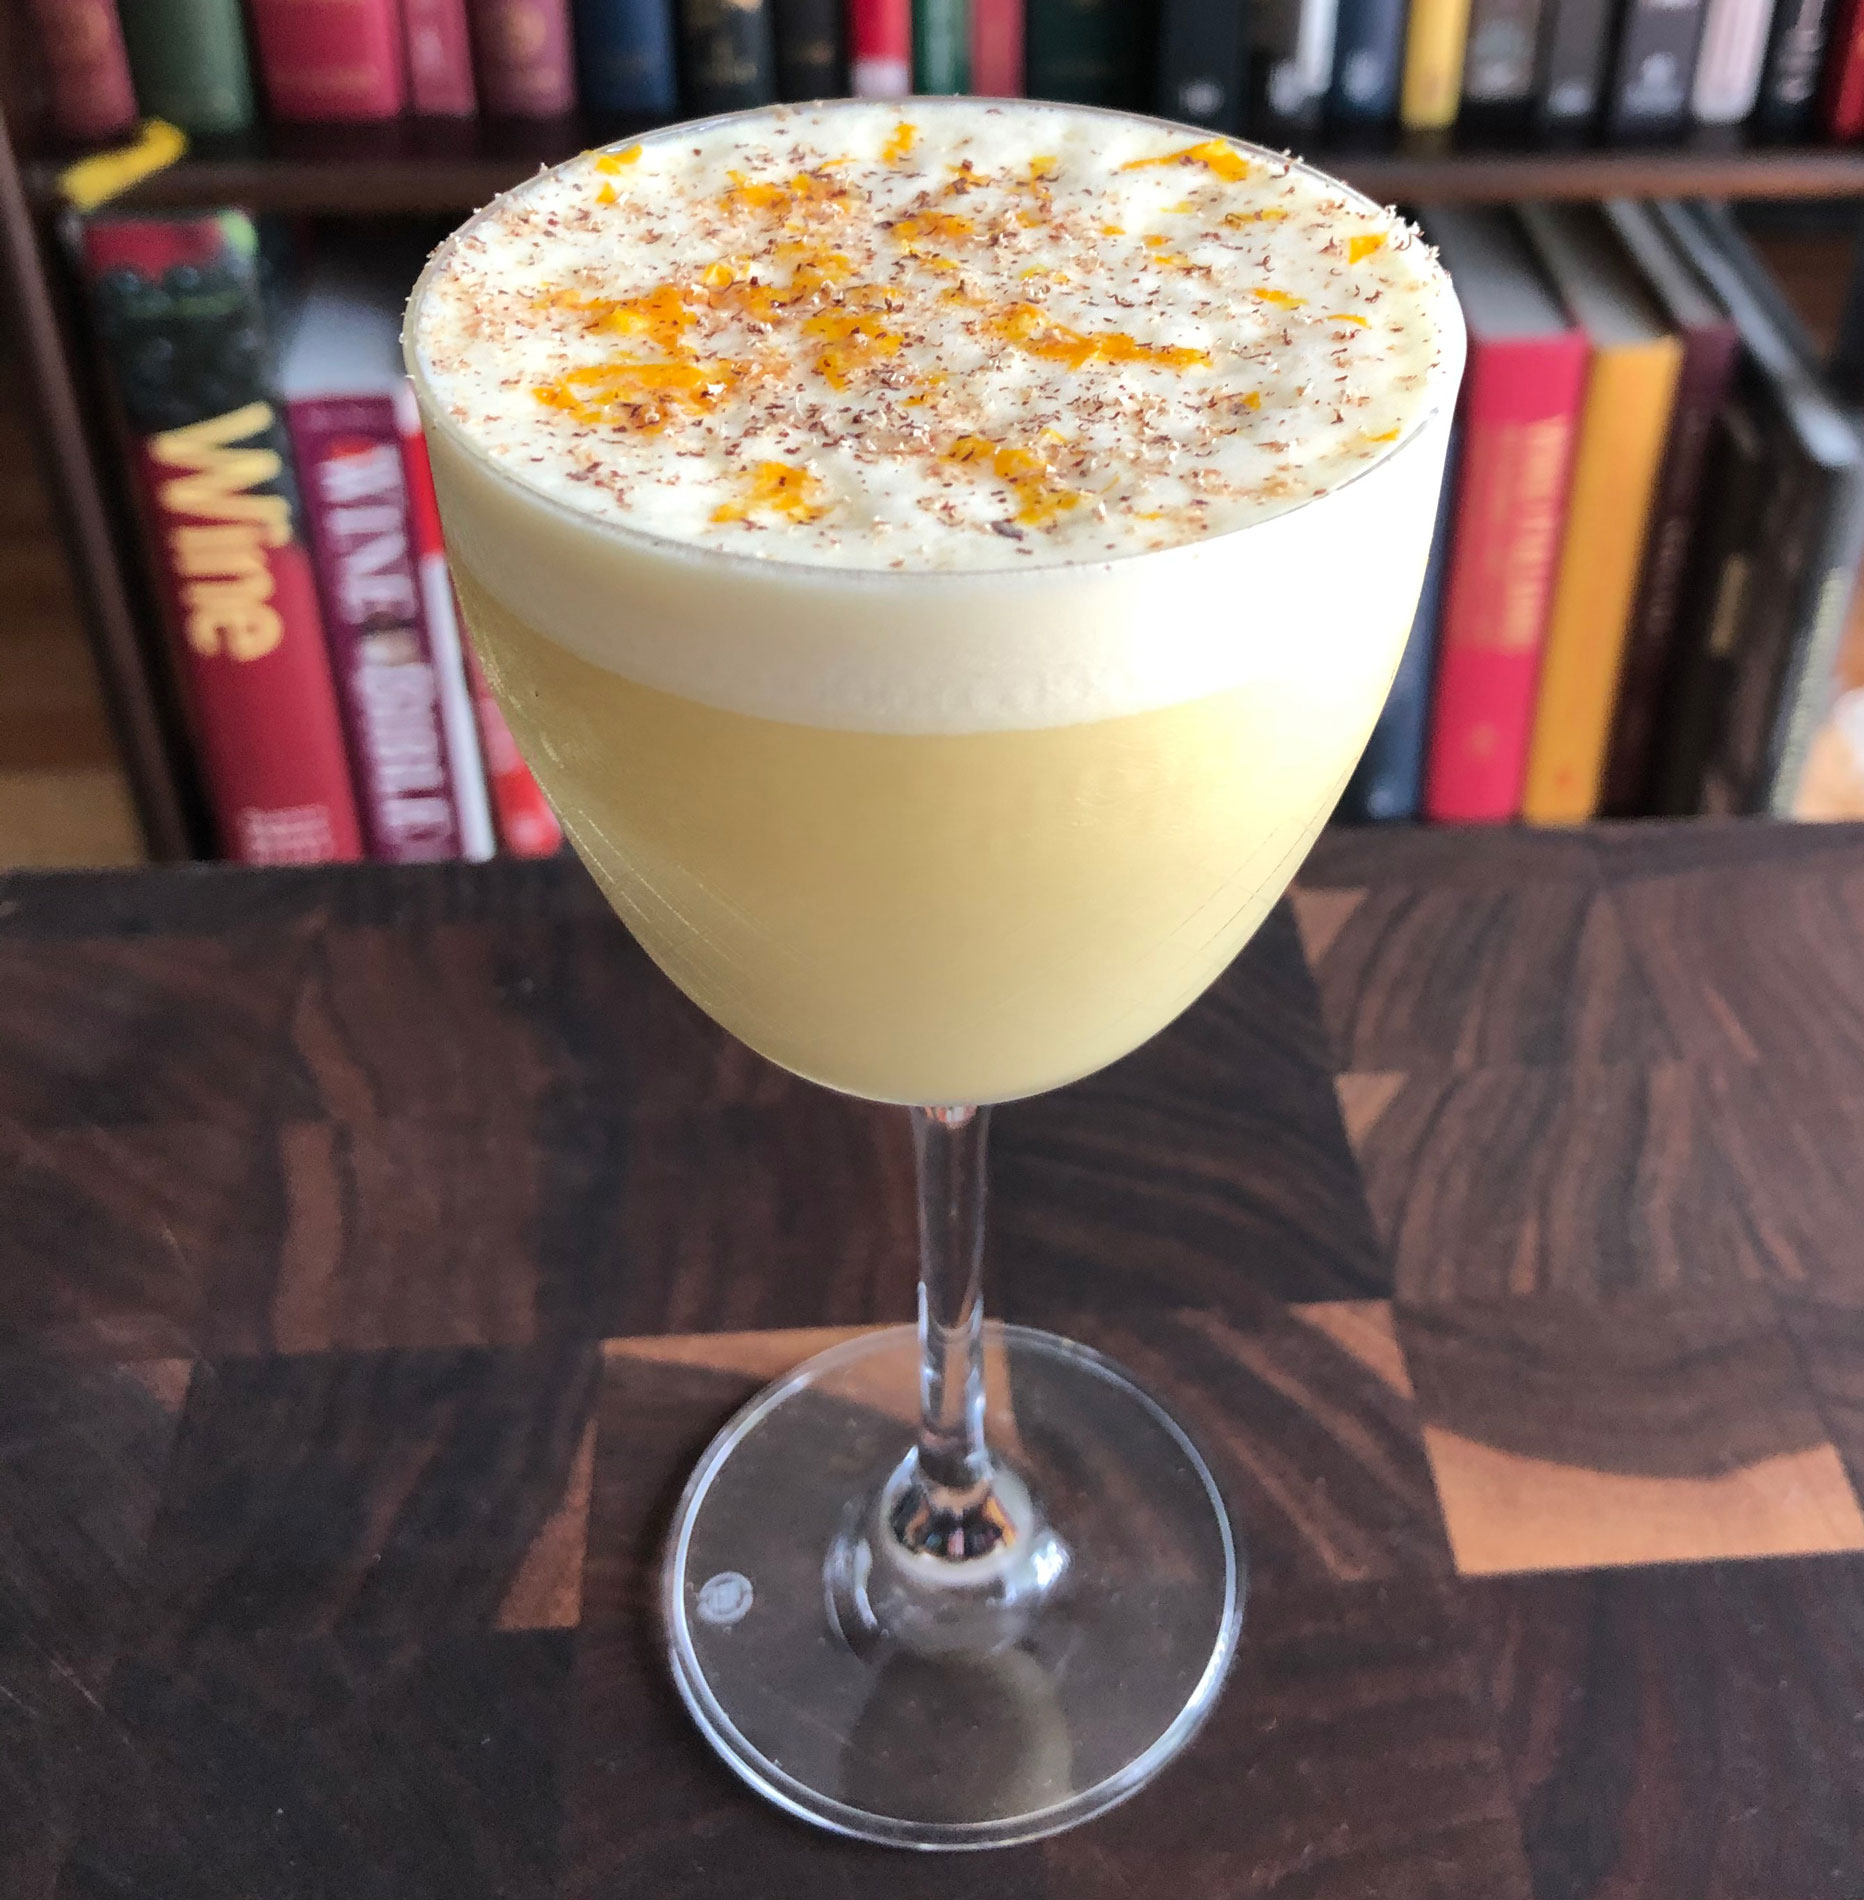 An example of the Frothy Stars, the mixed drink (cocktail), by Scott Beskow, Grunauer, Kansas City, MO, featuring raw egg, Henriques & Henriques Rainwater Madeira, half & half, and maple syrup; photo by Lee Edwards